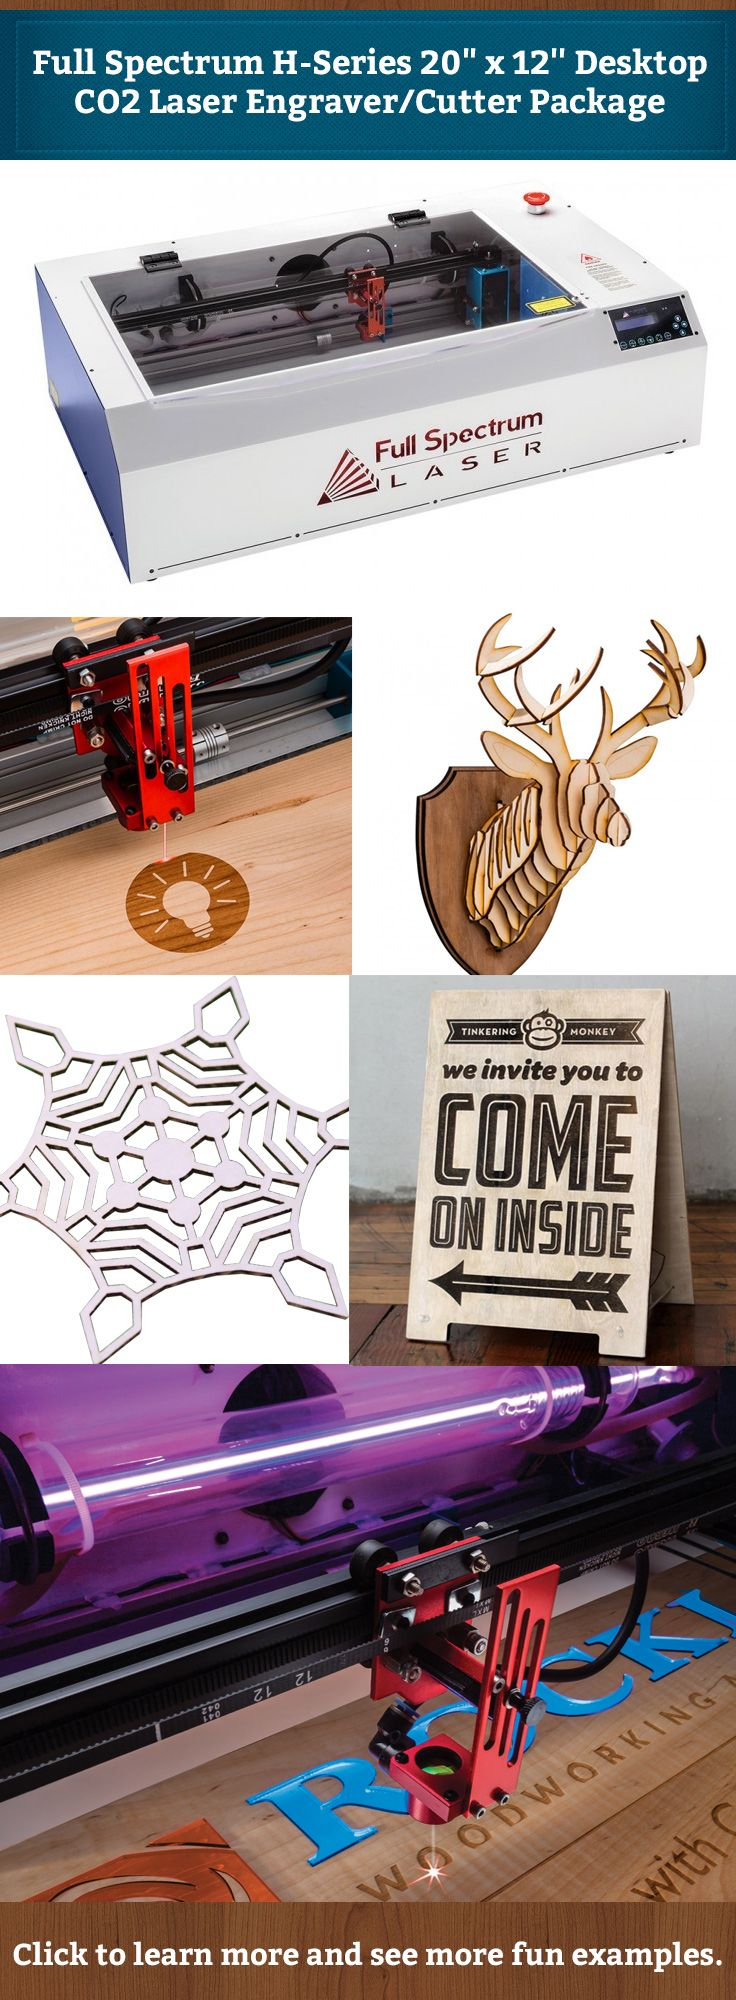 7 Best Podklady Pro Arduino Images On Pinterest Desktop Cnc Circuit Bent Modified Toy Festival Ponoko Harness The Power Of Laser Light To Cut Material Up 1 4